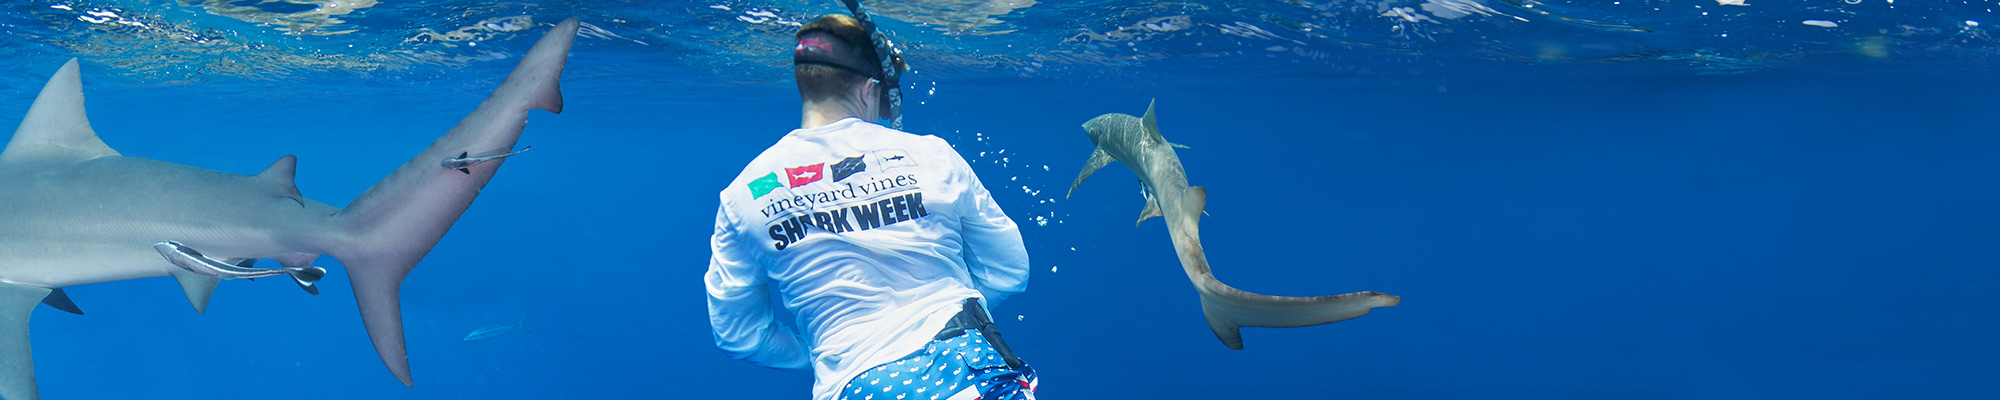 man swimming with sharks in some vineyard vines Shark Week gear!